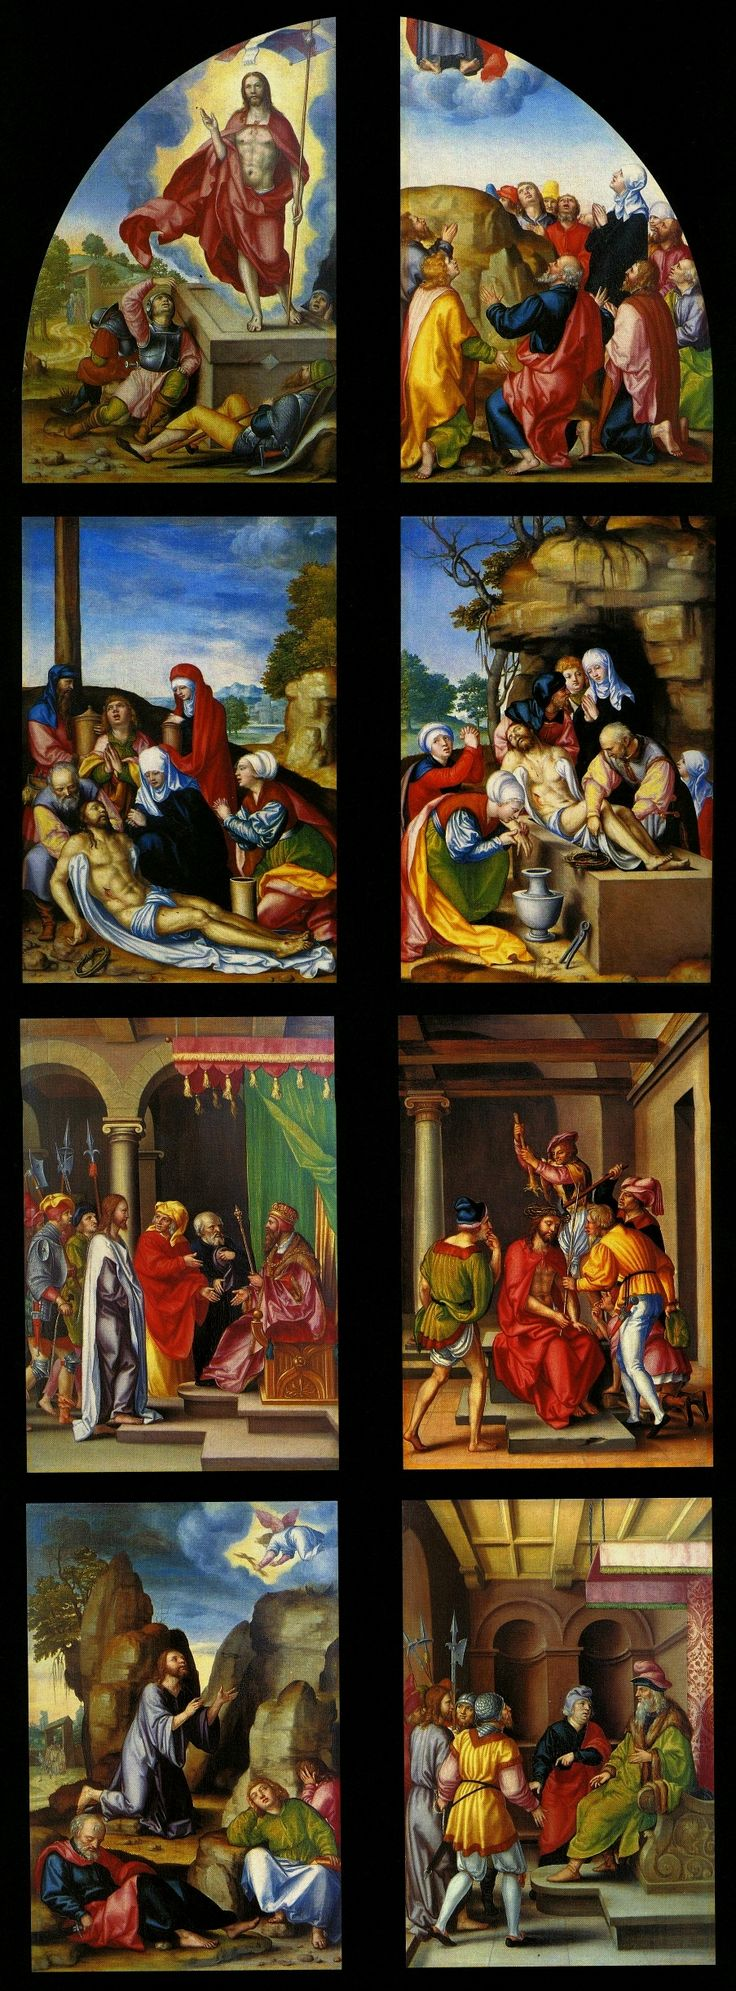 Exterior panels from the silver altarpiece by Georg Pencz, conception Hans Dürer, 1531-1538 (PD-art/old), Kaplica Zygmuntowska, commissioned by Sigismund I the Old